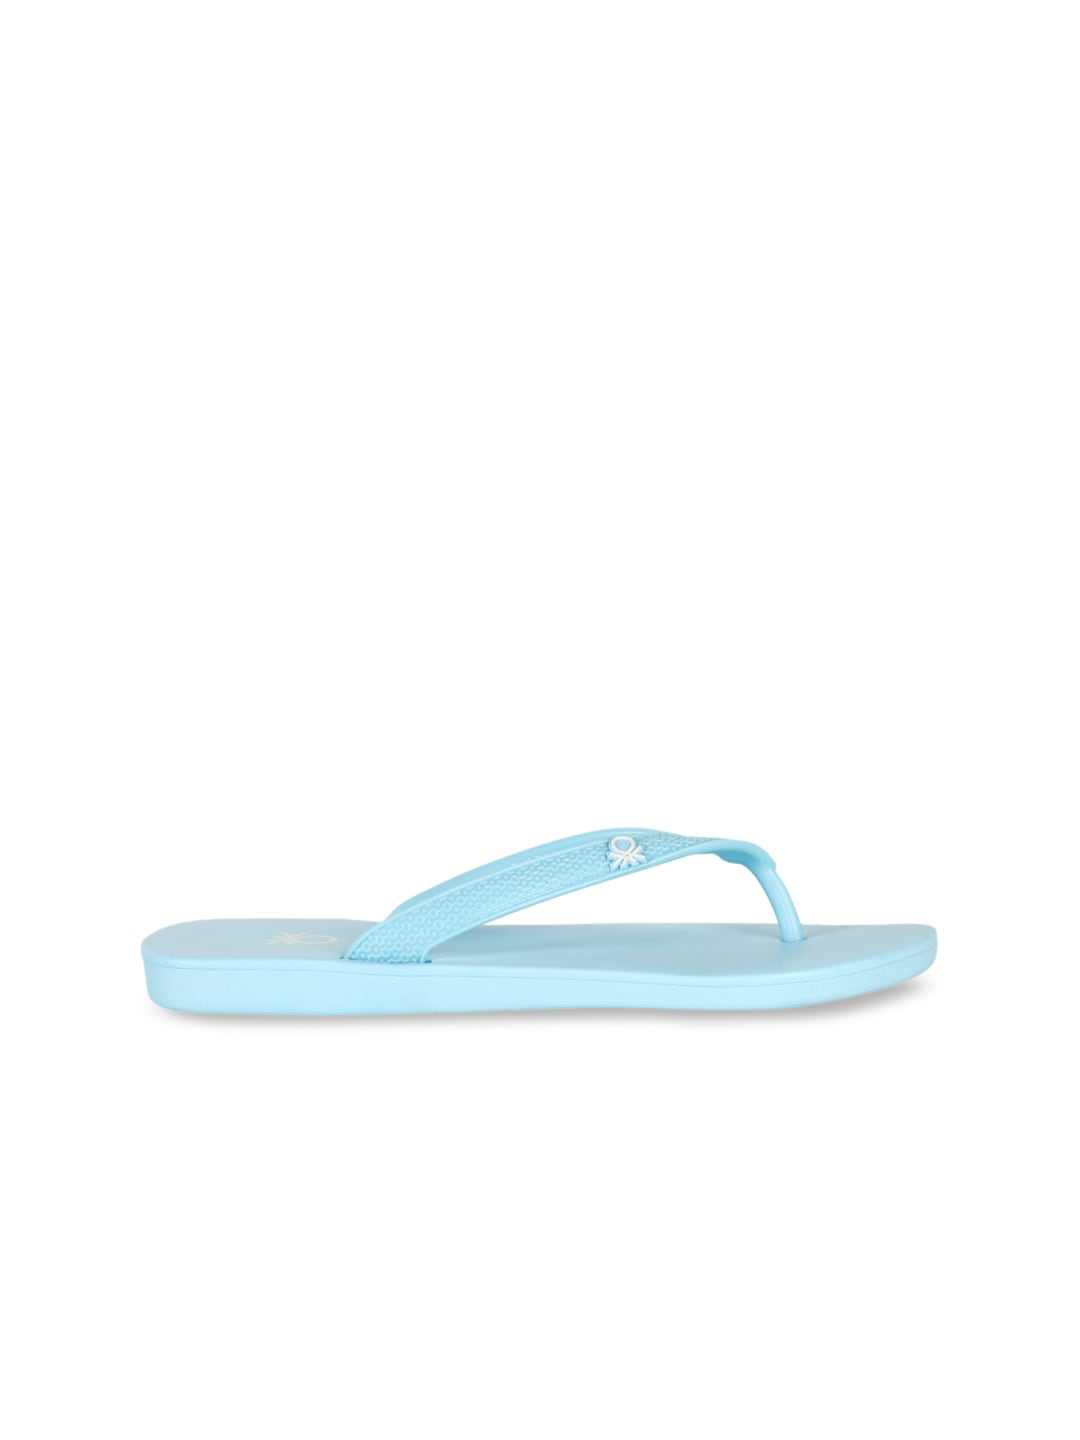 United Colors of Benetton Women Turquoise Blue Printed Thong Flip-Flops